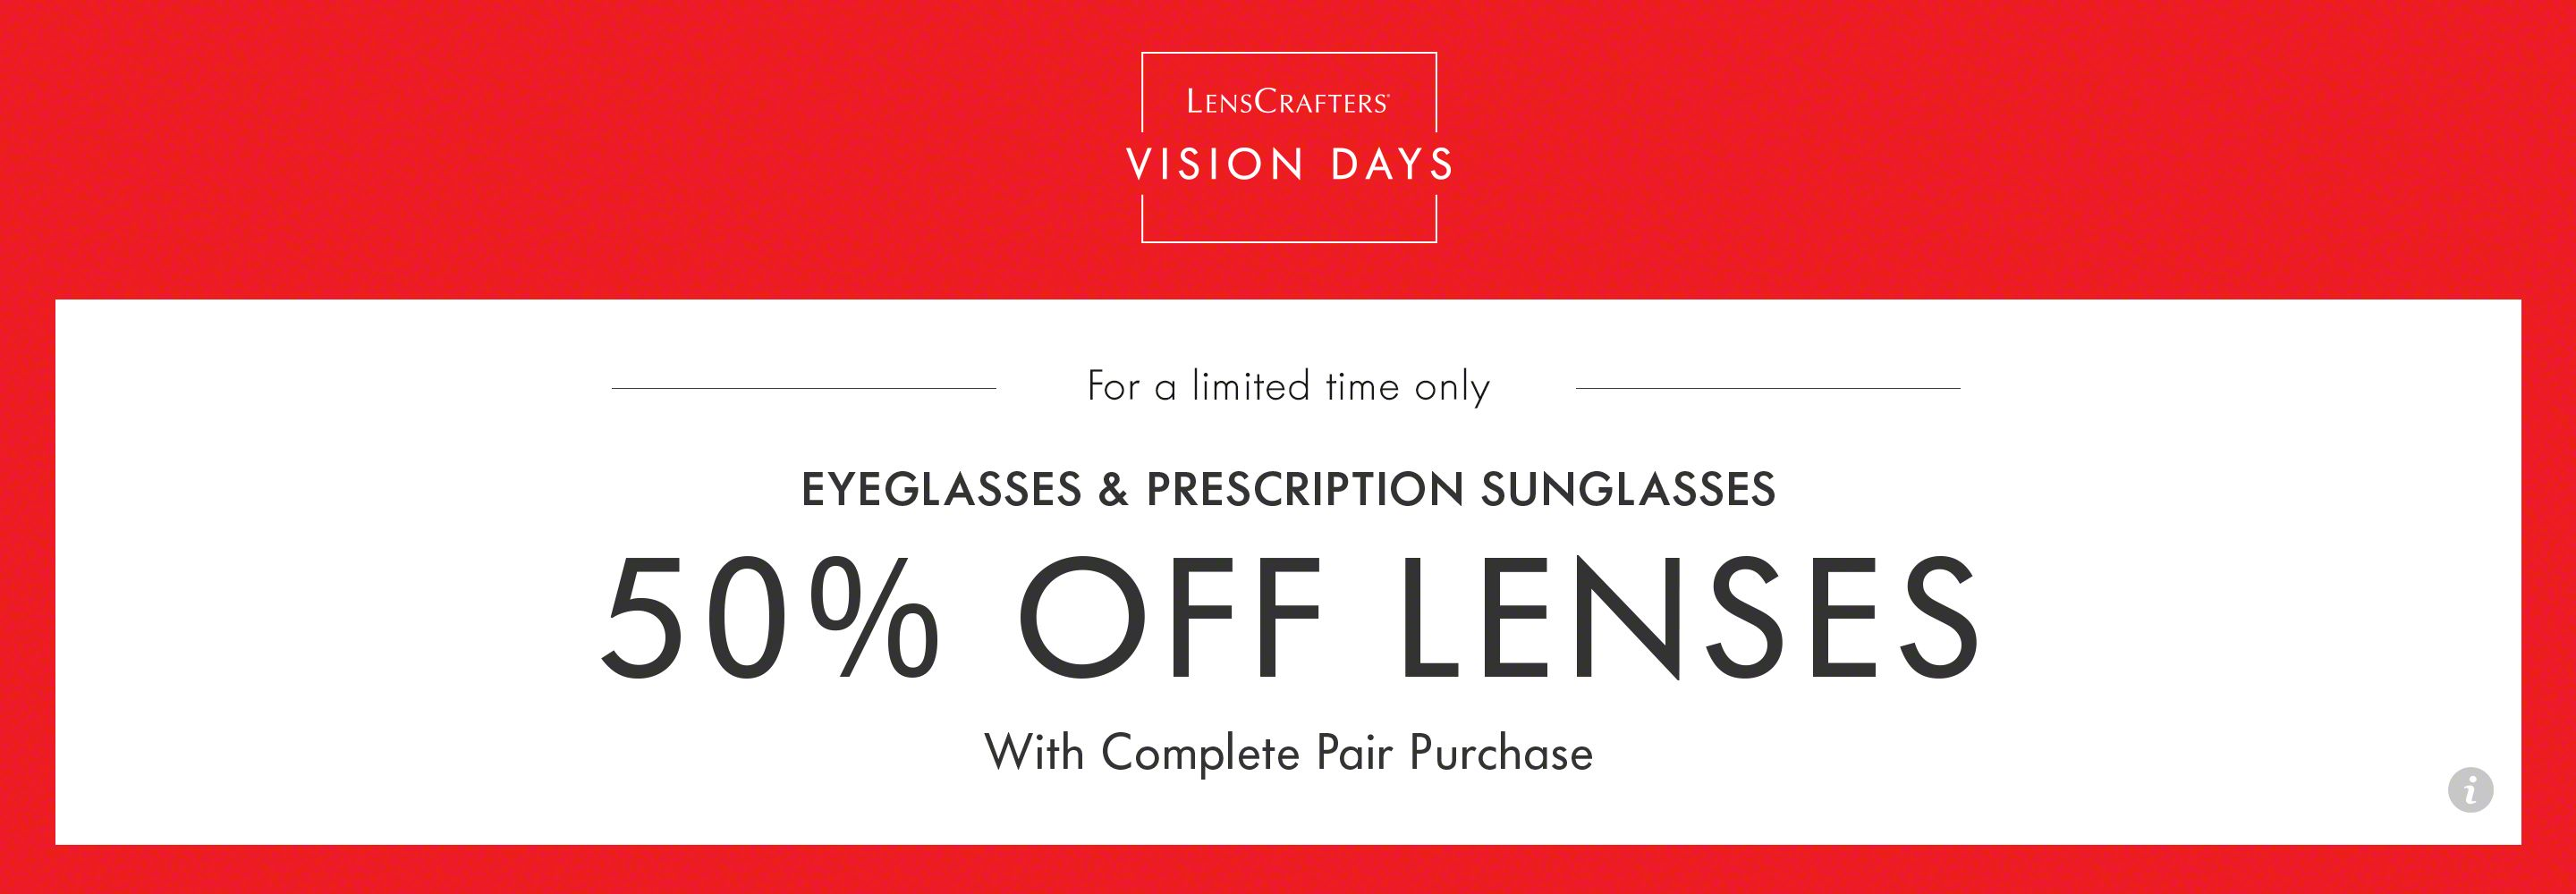 3b18b365f822 Save 50% off lenses with a purchase of a frame. Complete pair (frame and  lenses) purchase required. Cannot be combined with vision benefits, other  offers, ...